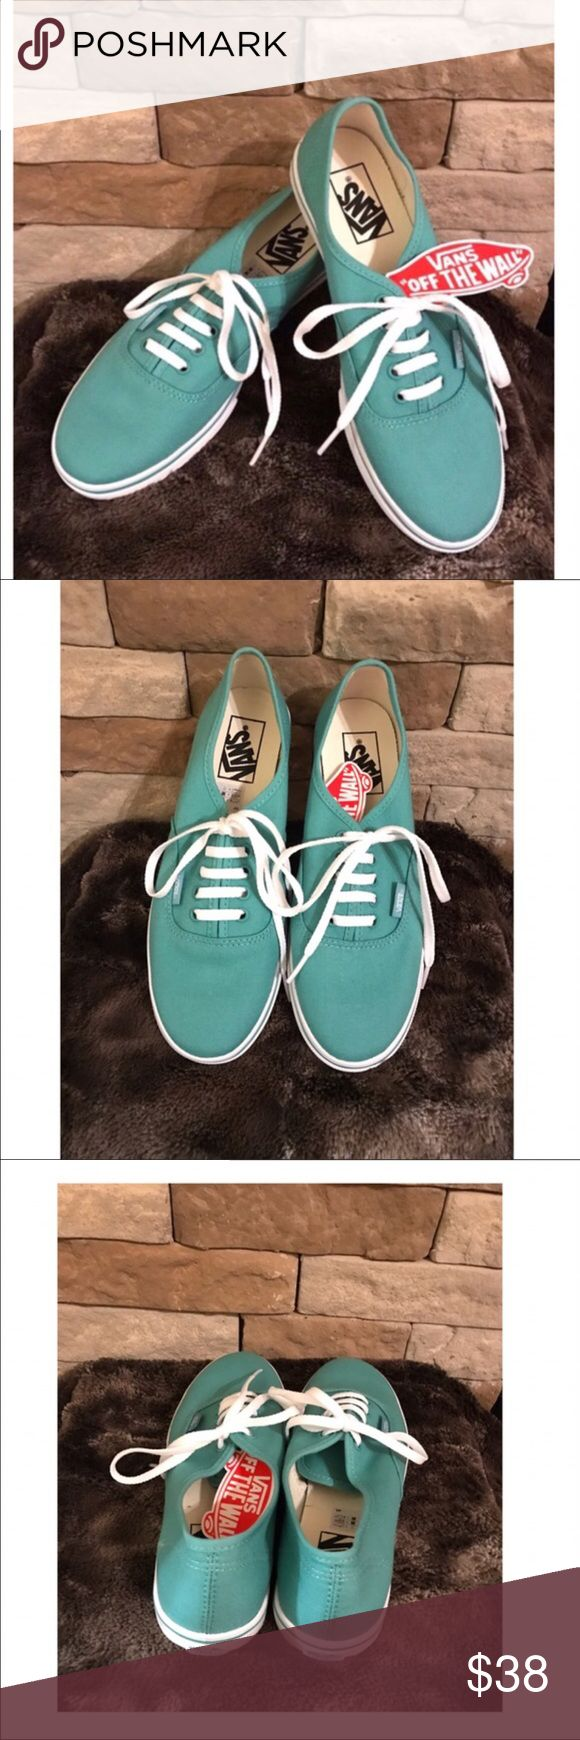 New Mint Green Vans The Authentic Lo Pro, a low top canvas lace-up with a slim silhouette.  Beautiful mint green color.  NWT Vans Shoes Athletic Shoes